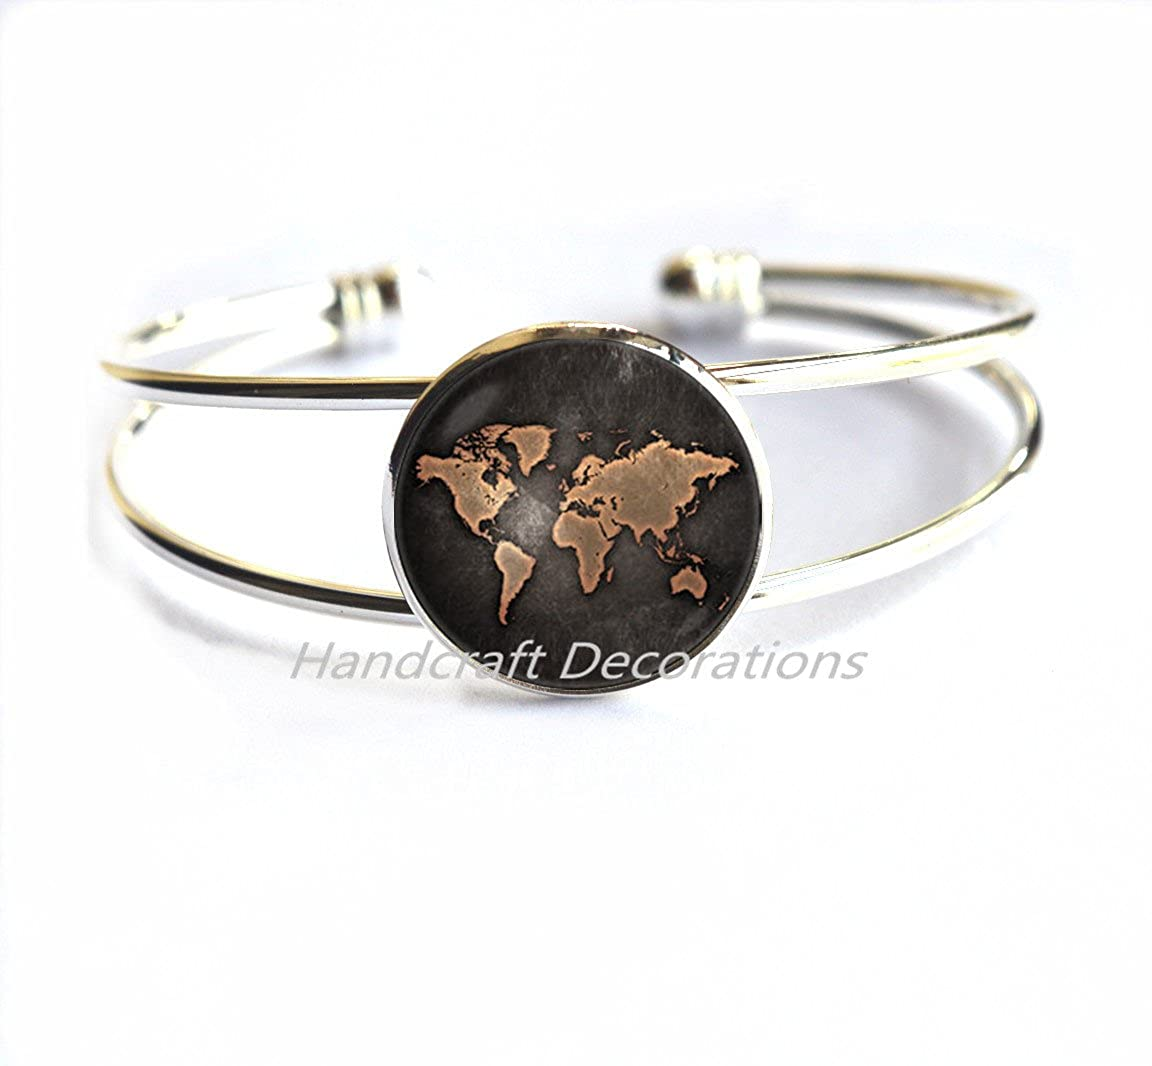 World map Bracelet Globe Bracelet Earth Map jewelry World map Bracelets Travel Bracelets Travel gift World globe jewellery Old map Bracelet.F280 HandcraftDecorations